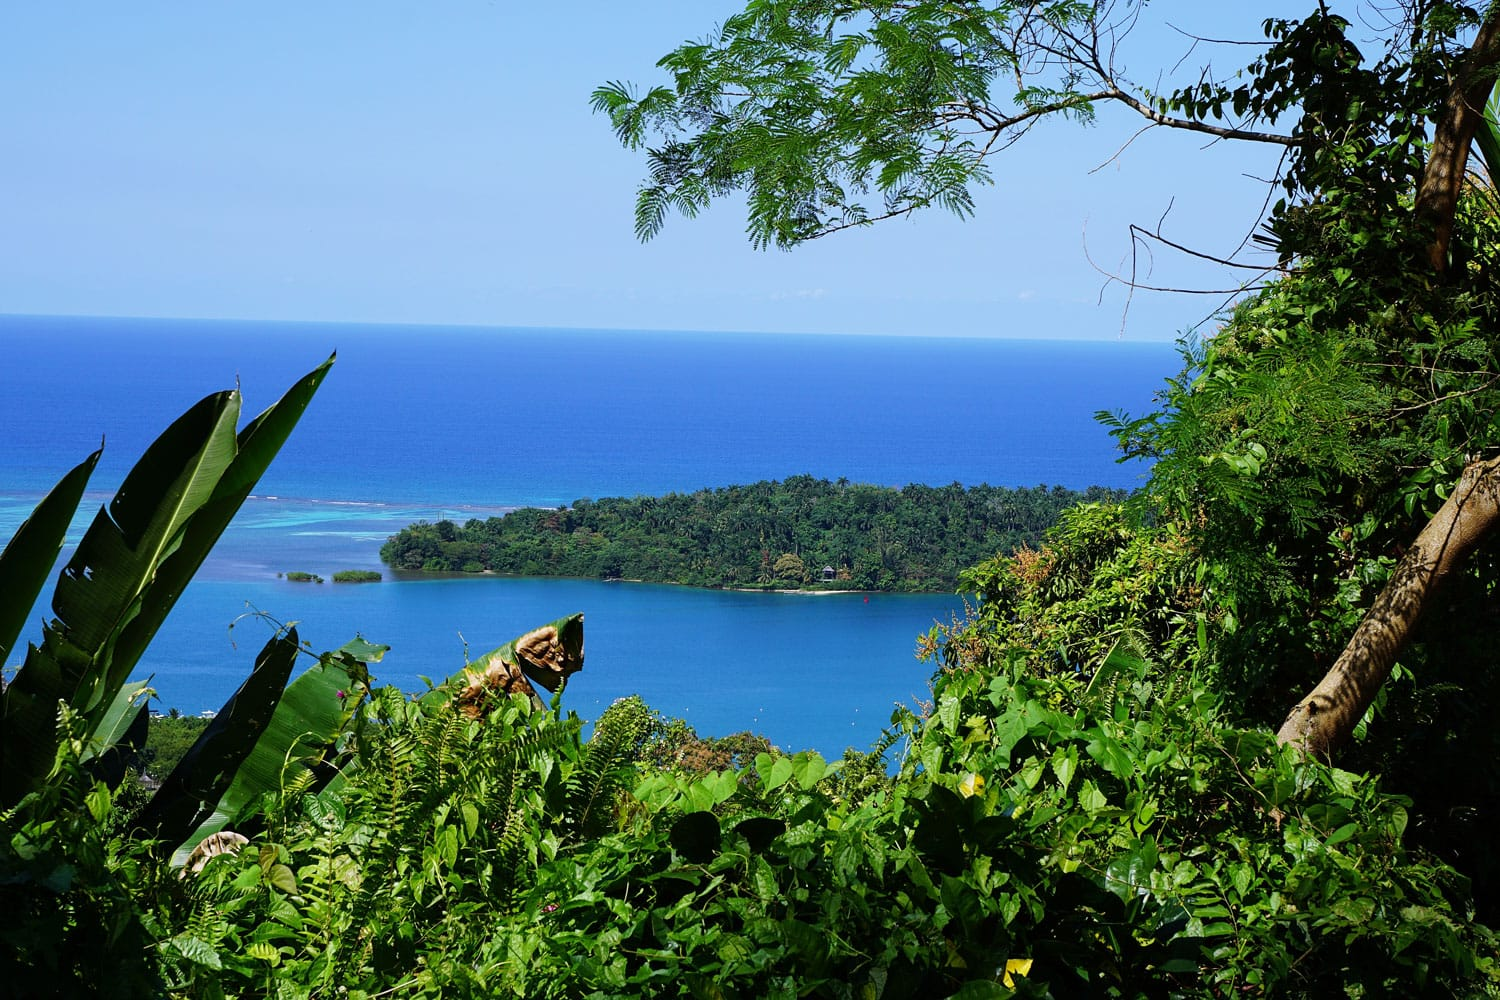 View of Navy Island in Jamaica